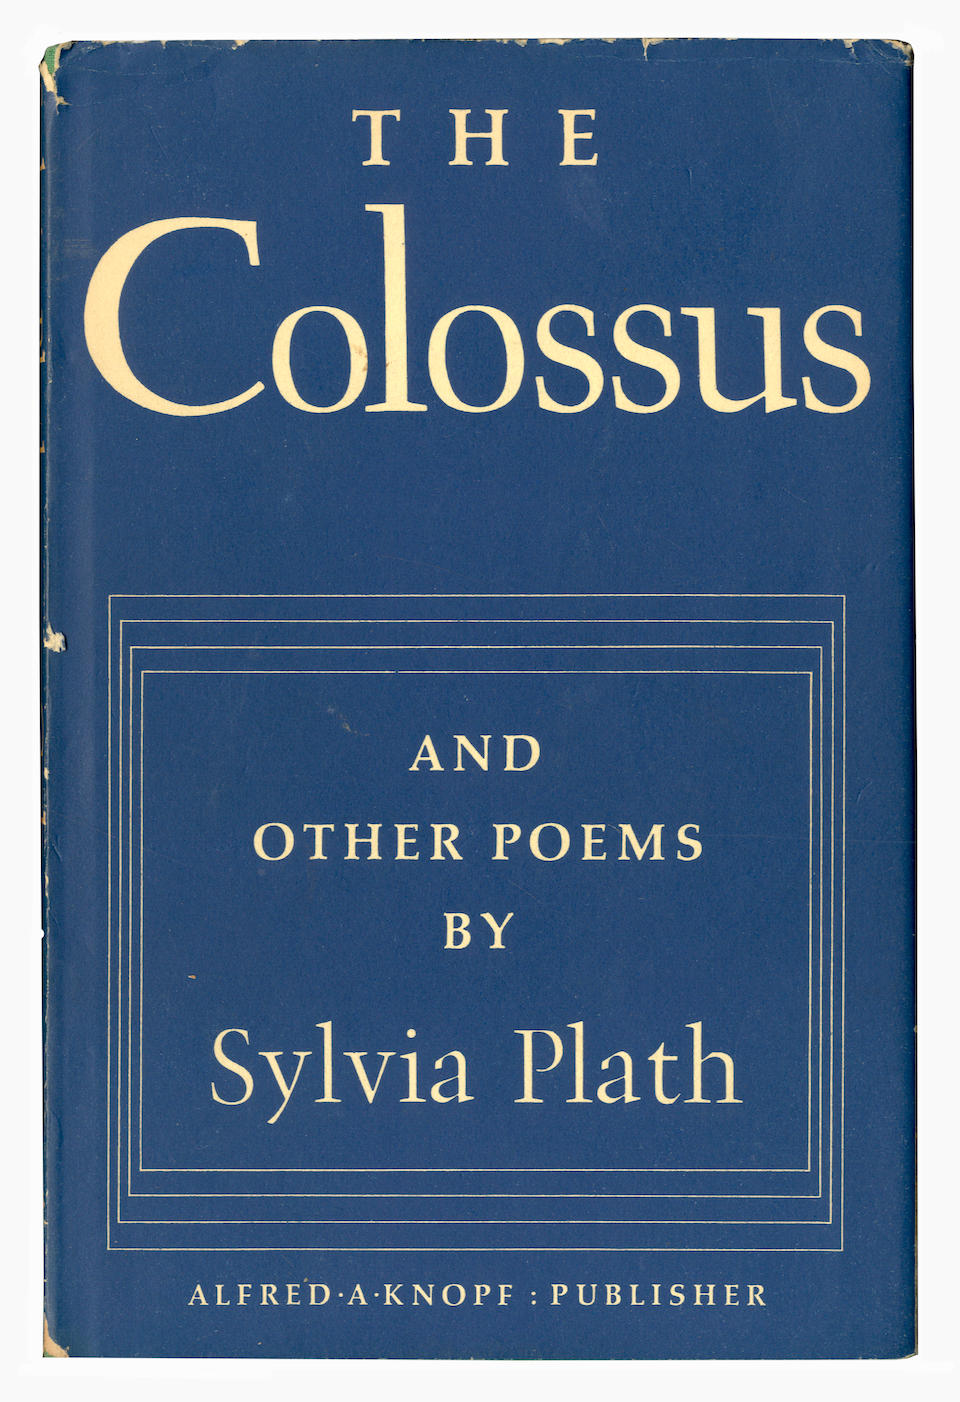 """PLATH (SYLVIA) The Colossus & Other Poems, first American edition, AUTHOR'S PRESENTATION COPY, INSCRIBED """"For Winifred & Garnett with warmest good wishes - Sylvia Court Green: 1962"""" on the front free endpaper, New York, Alfred A. Knopf, 1962"""